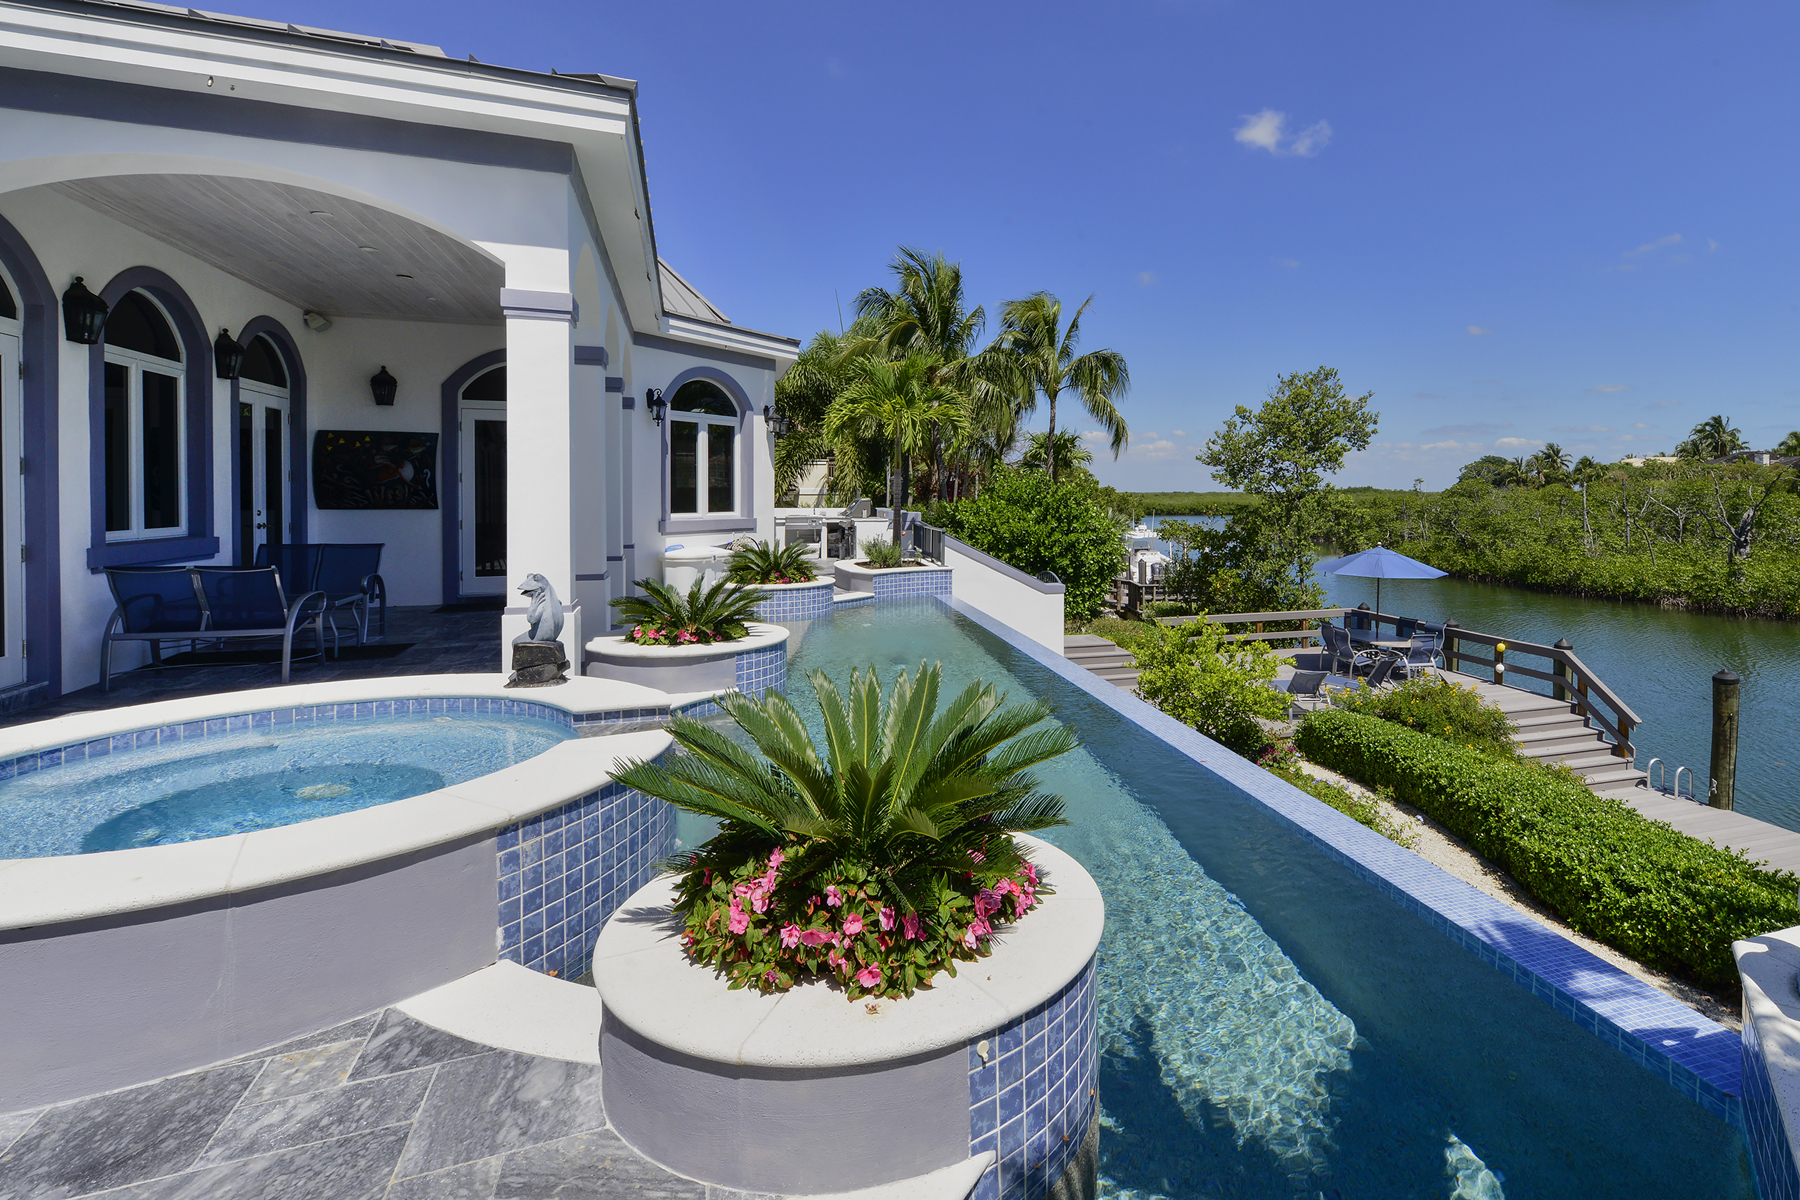 Maison unifamiliale pour l Vente à Custom Built Waterfront Home at Ocean Reef 17 North Pelican Drive Ocean Reef Community, Key Largo, Florida, 33037 United States